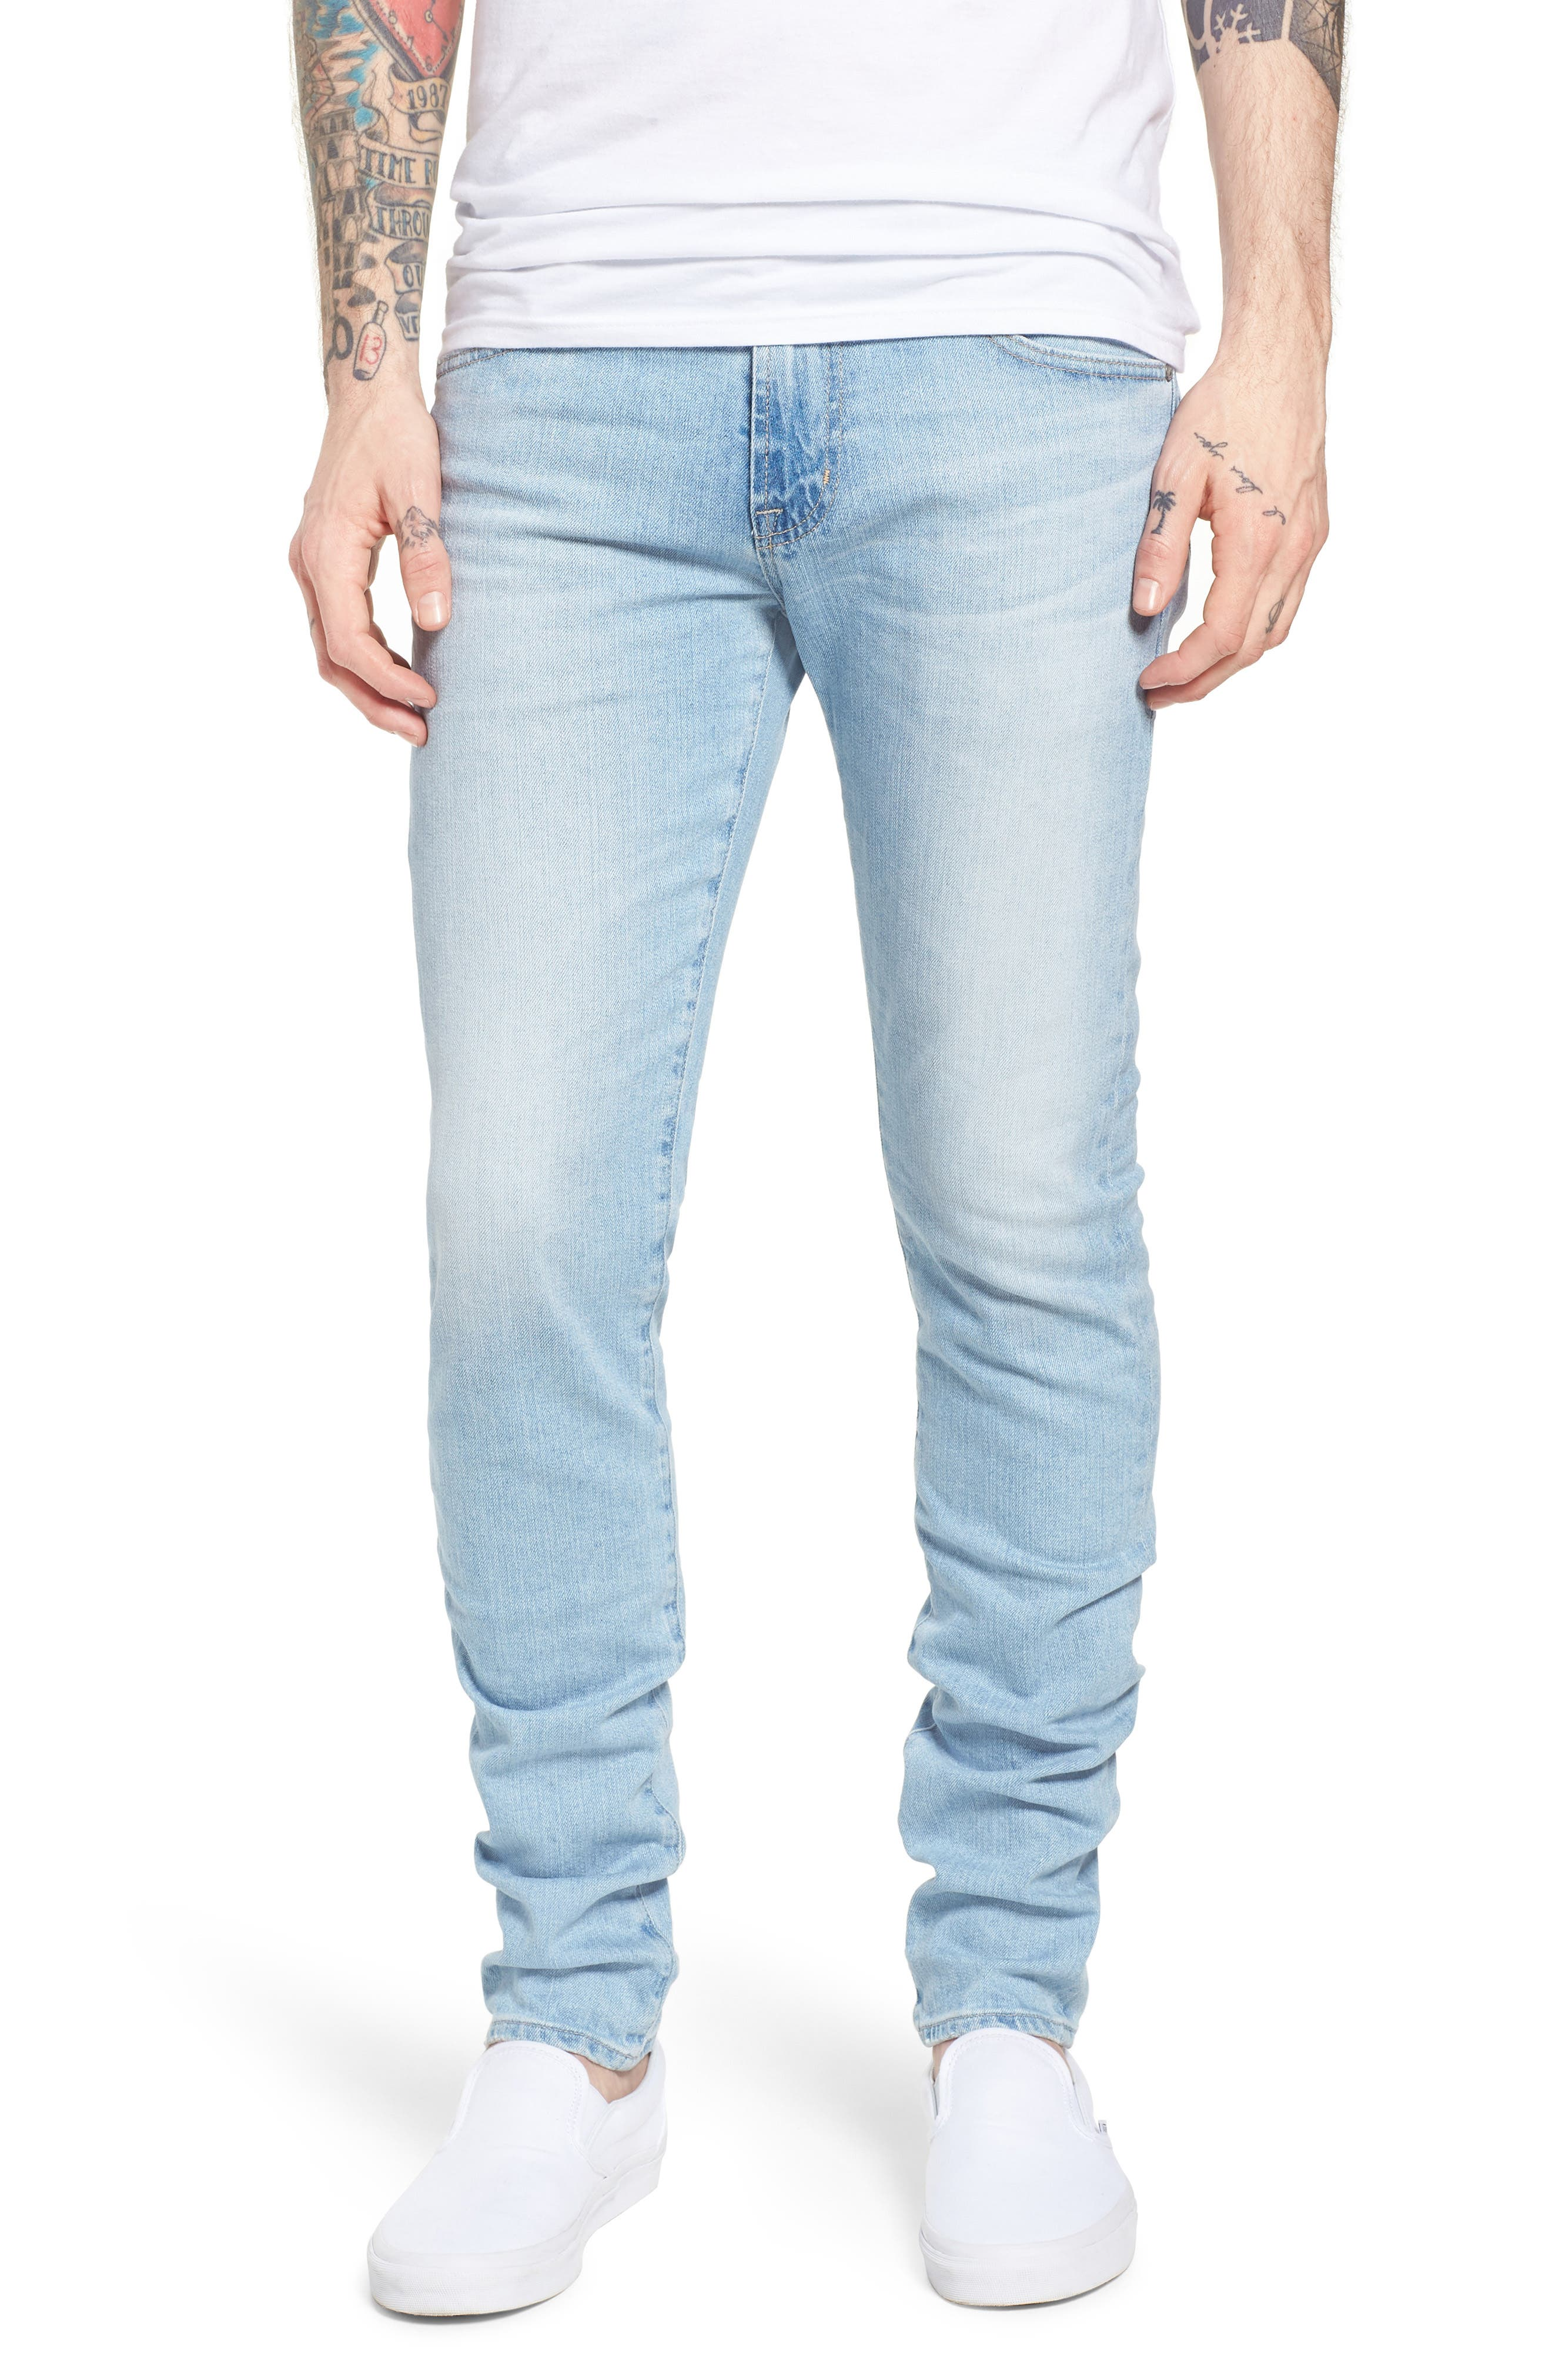 Stockton Skinny Fit Jeans,                         Main,                         color, 494